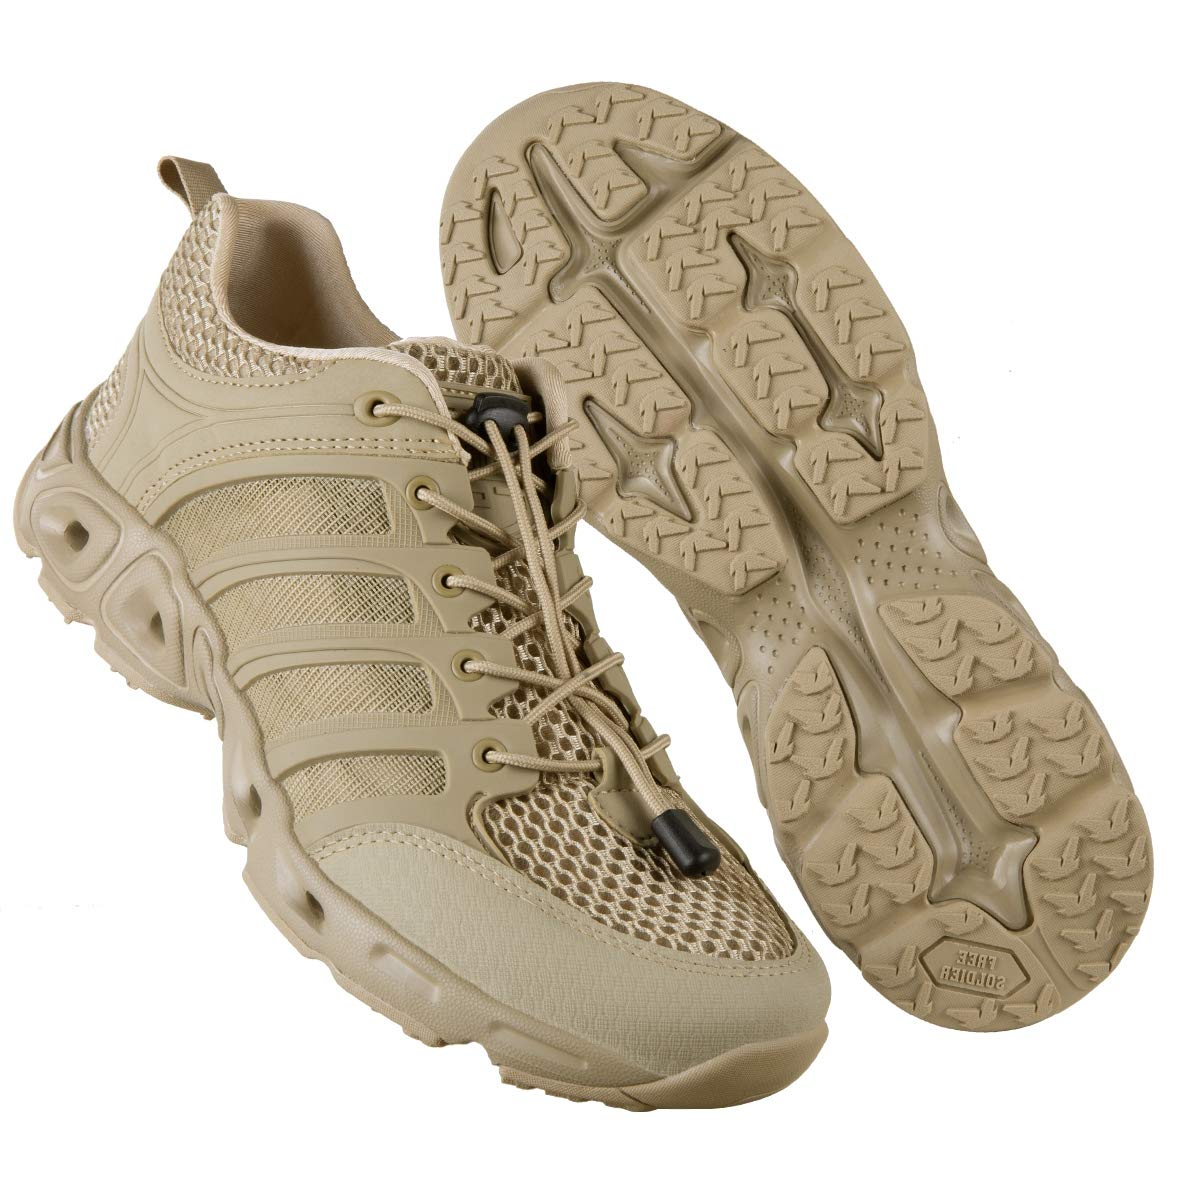 FREE SOLDIER Outdoor Men's Quick Drying Lightweight Sport Hiking Water Shoes (Sand 10 M US) by FREE SOLDIER